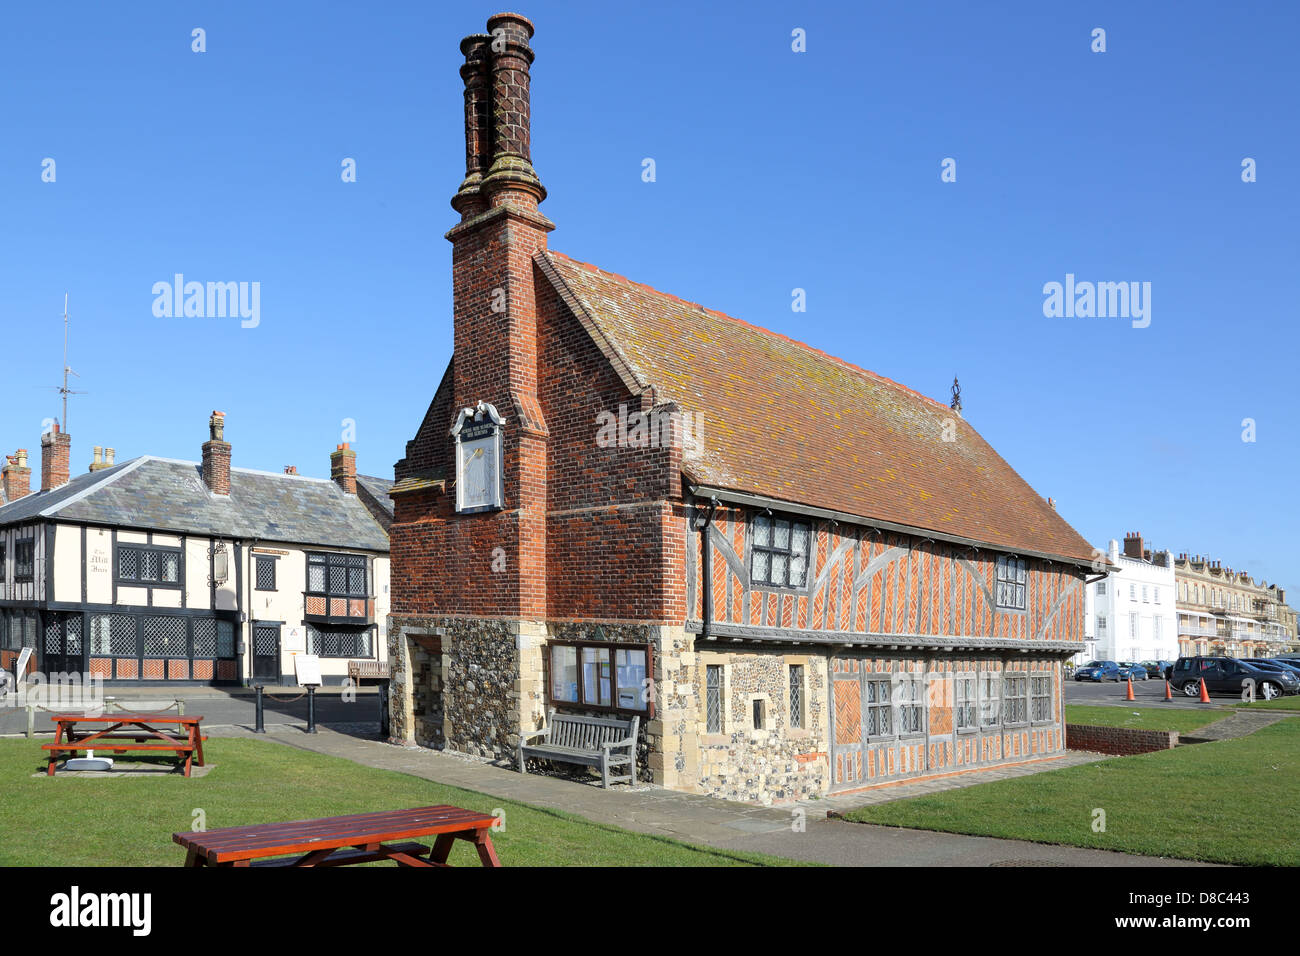 moot hall at aldeburgh on the suffolk coast - Stock Image